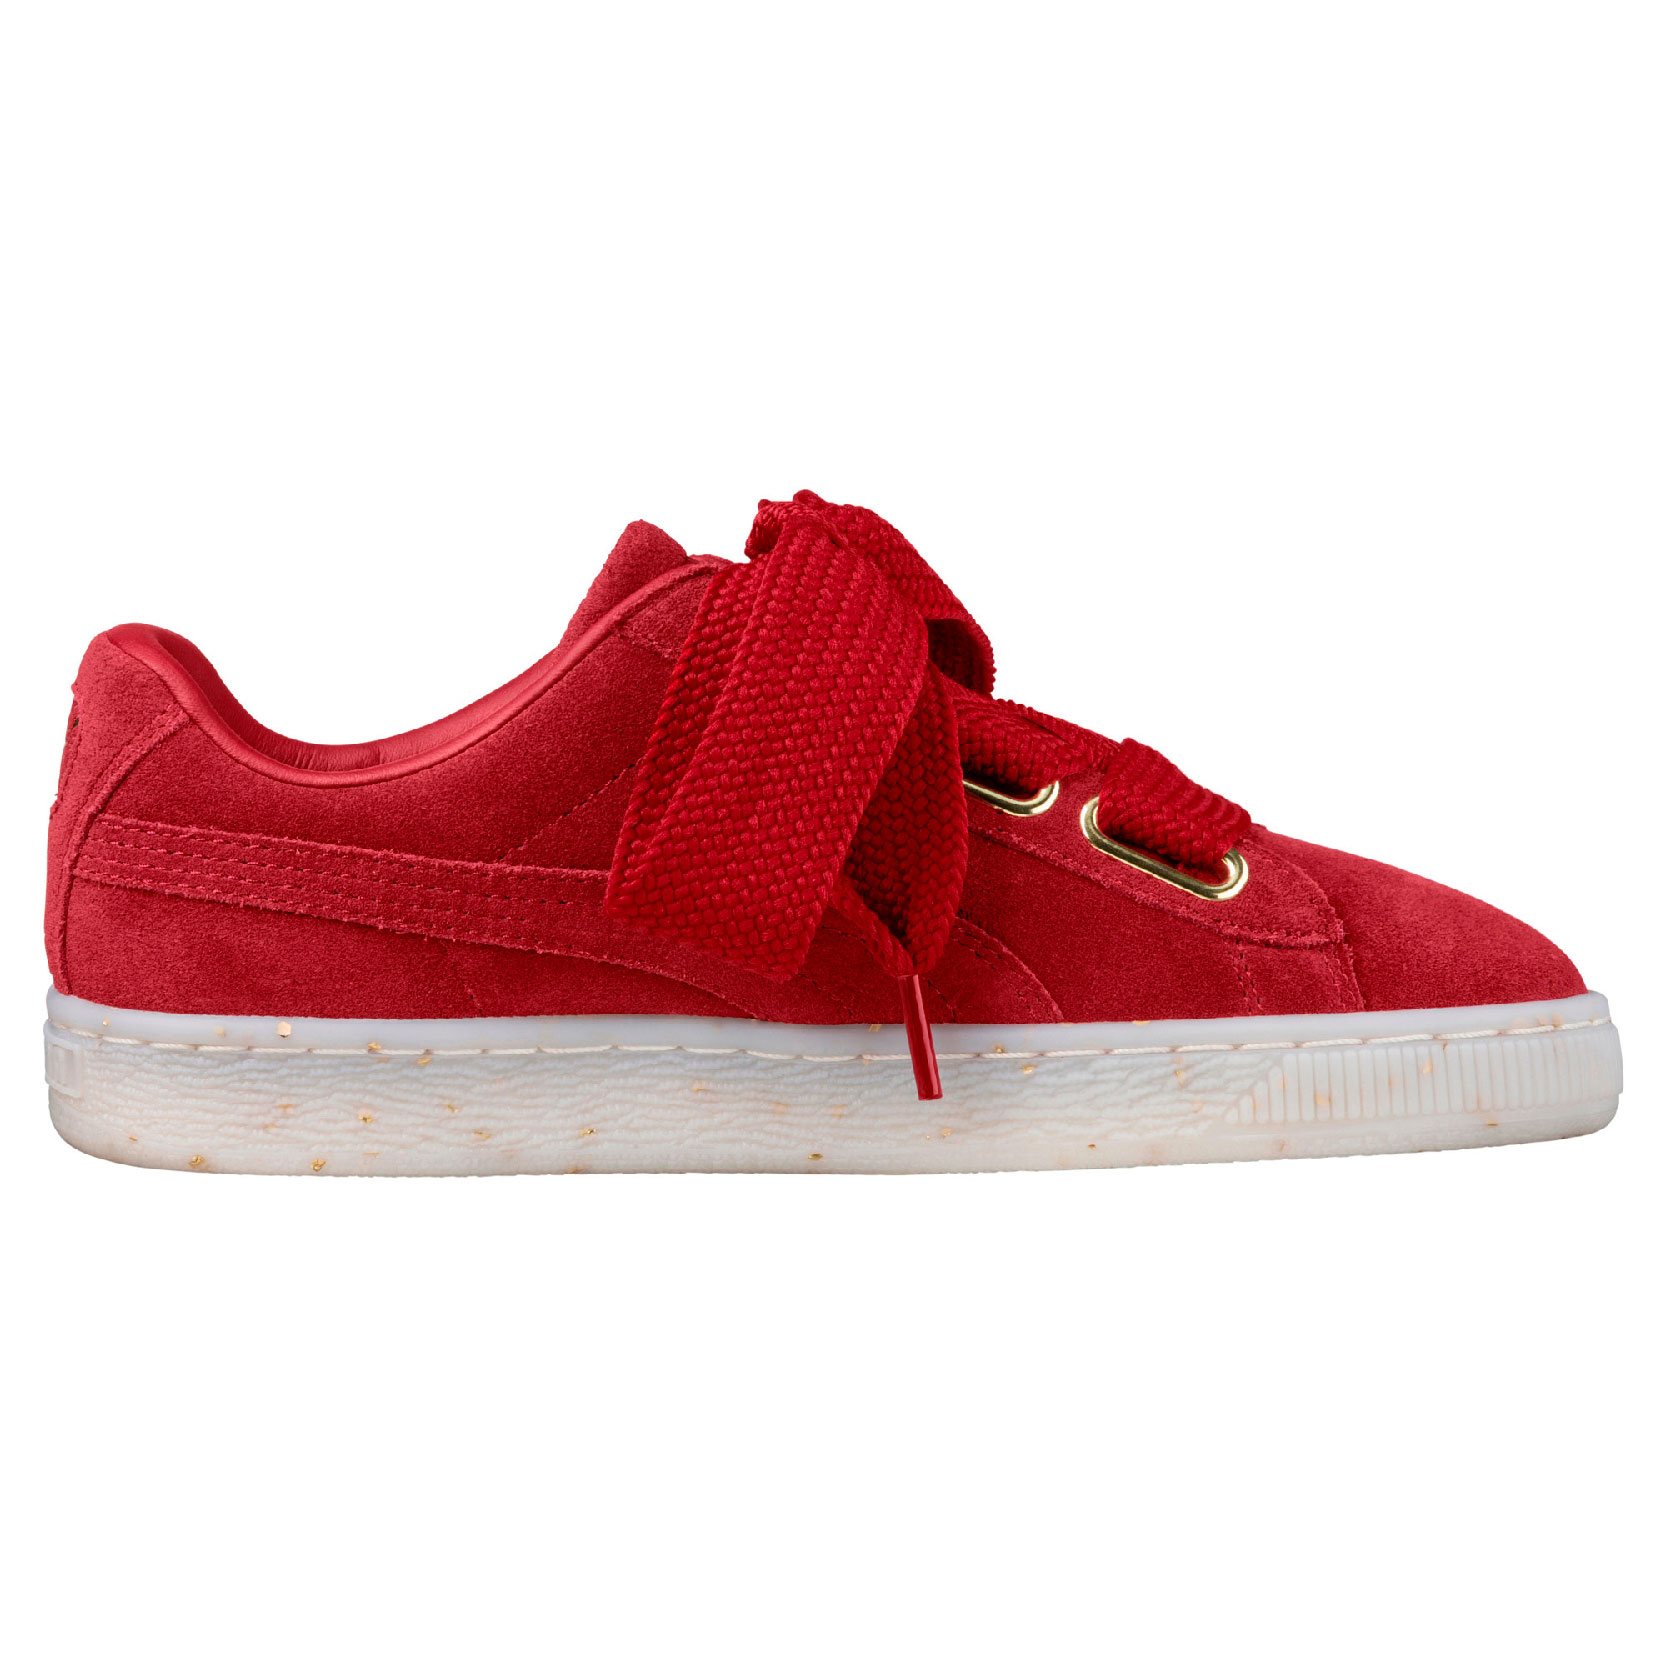 PUMA Women's Suede Heart Celebrate Wn s Red Dahlia-Red 365561-02